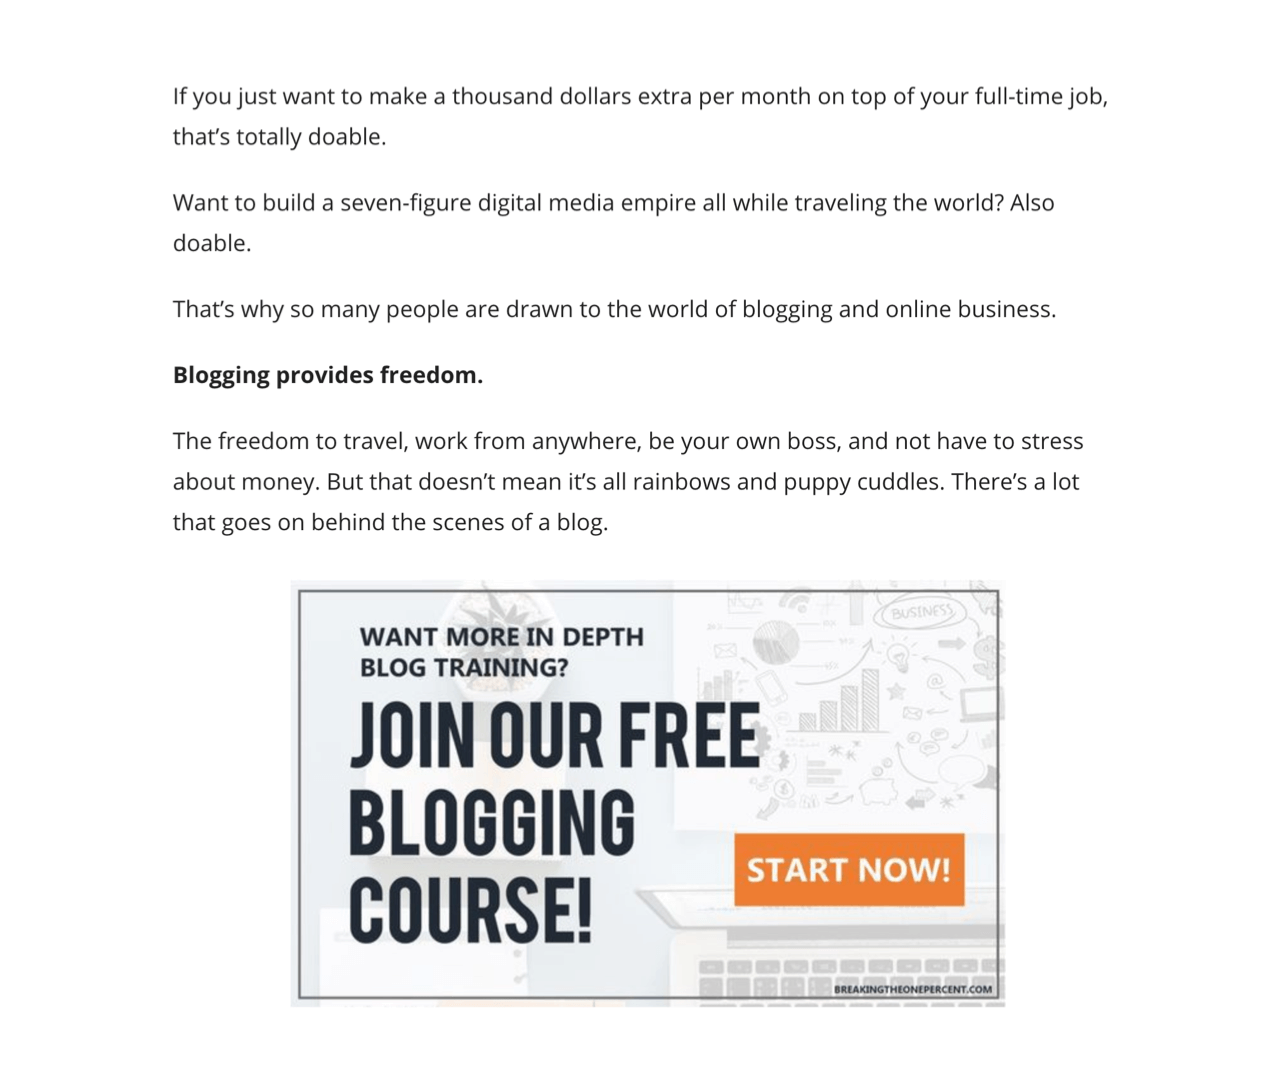 Breaking the One Percent blog offers an email course as a content upgrade in their blog